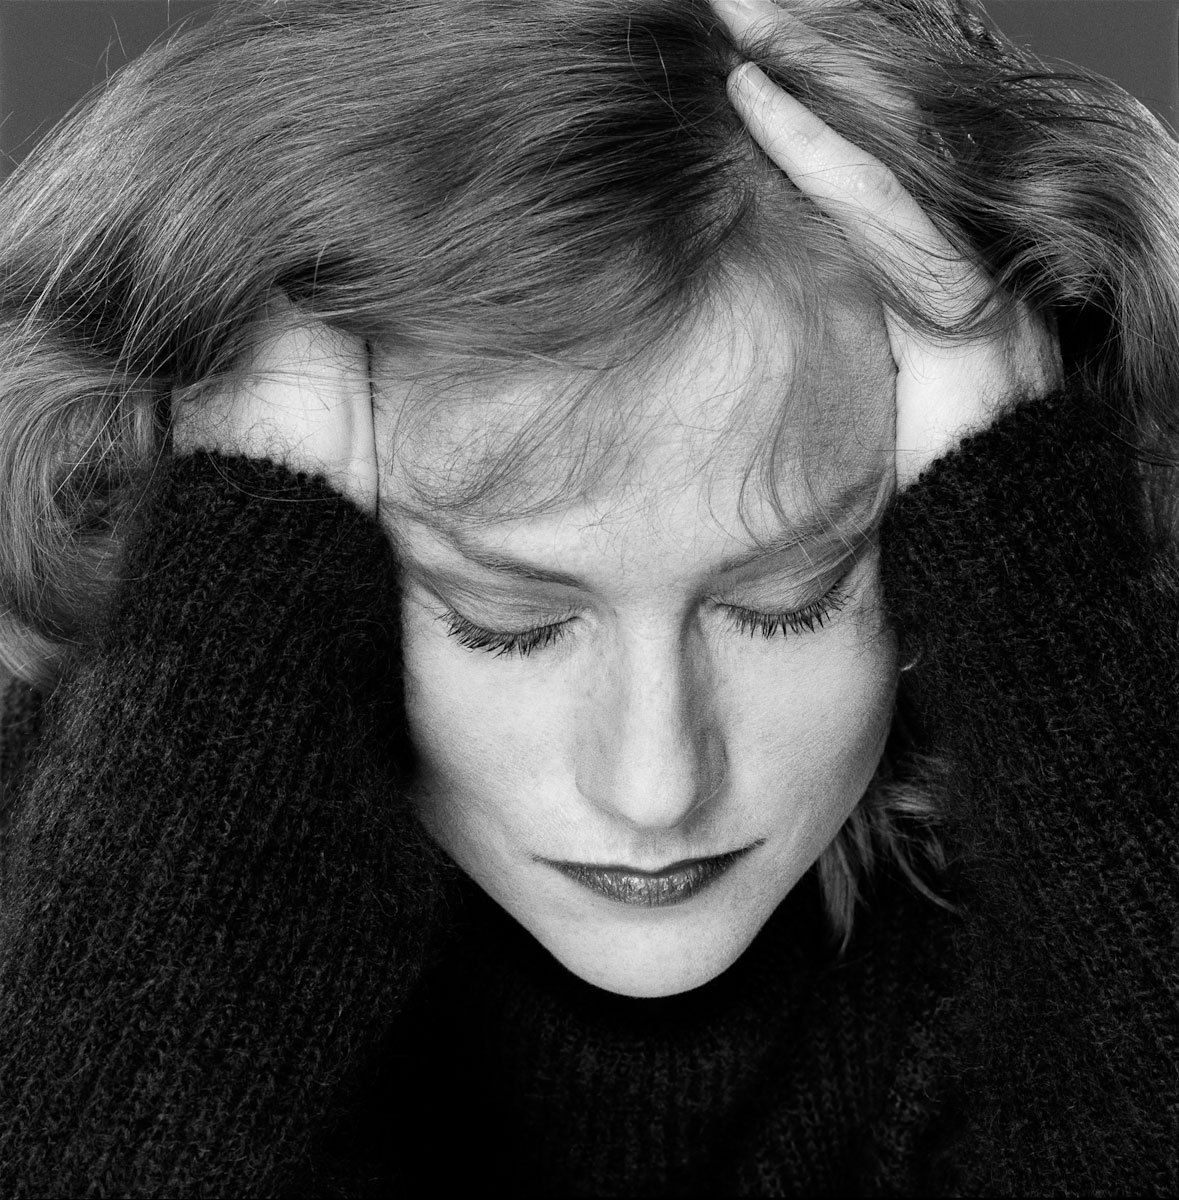 Isabelle Huppert, actress